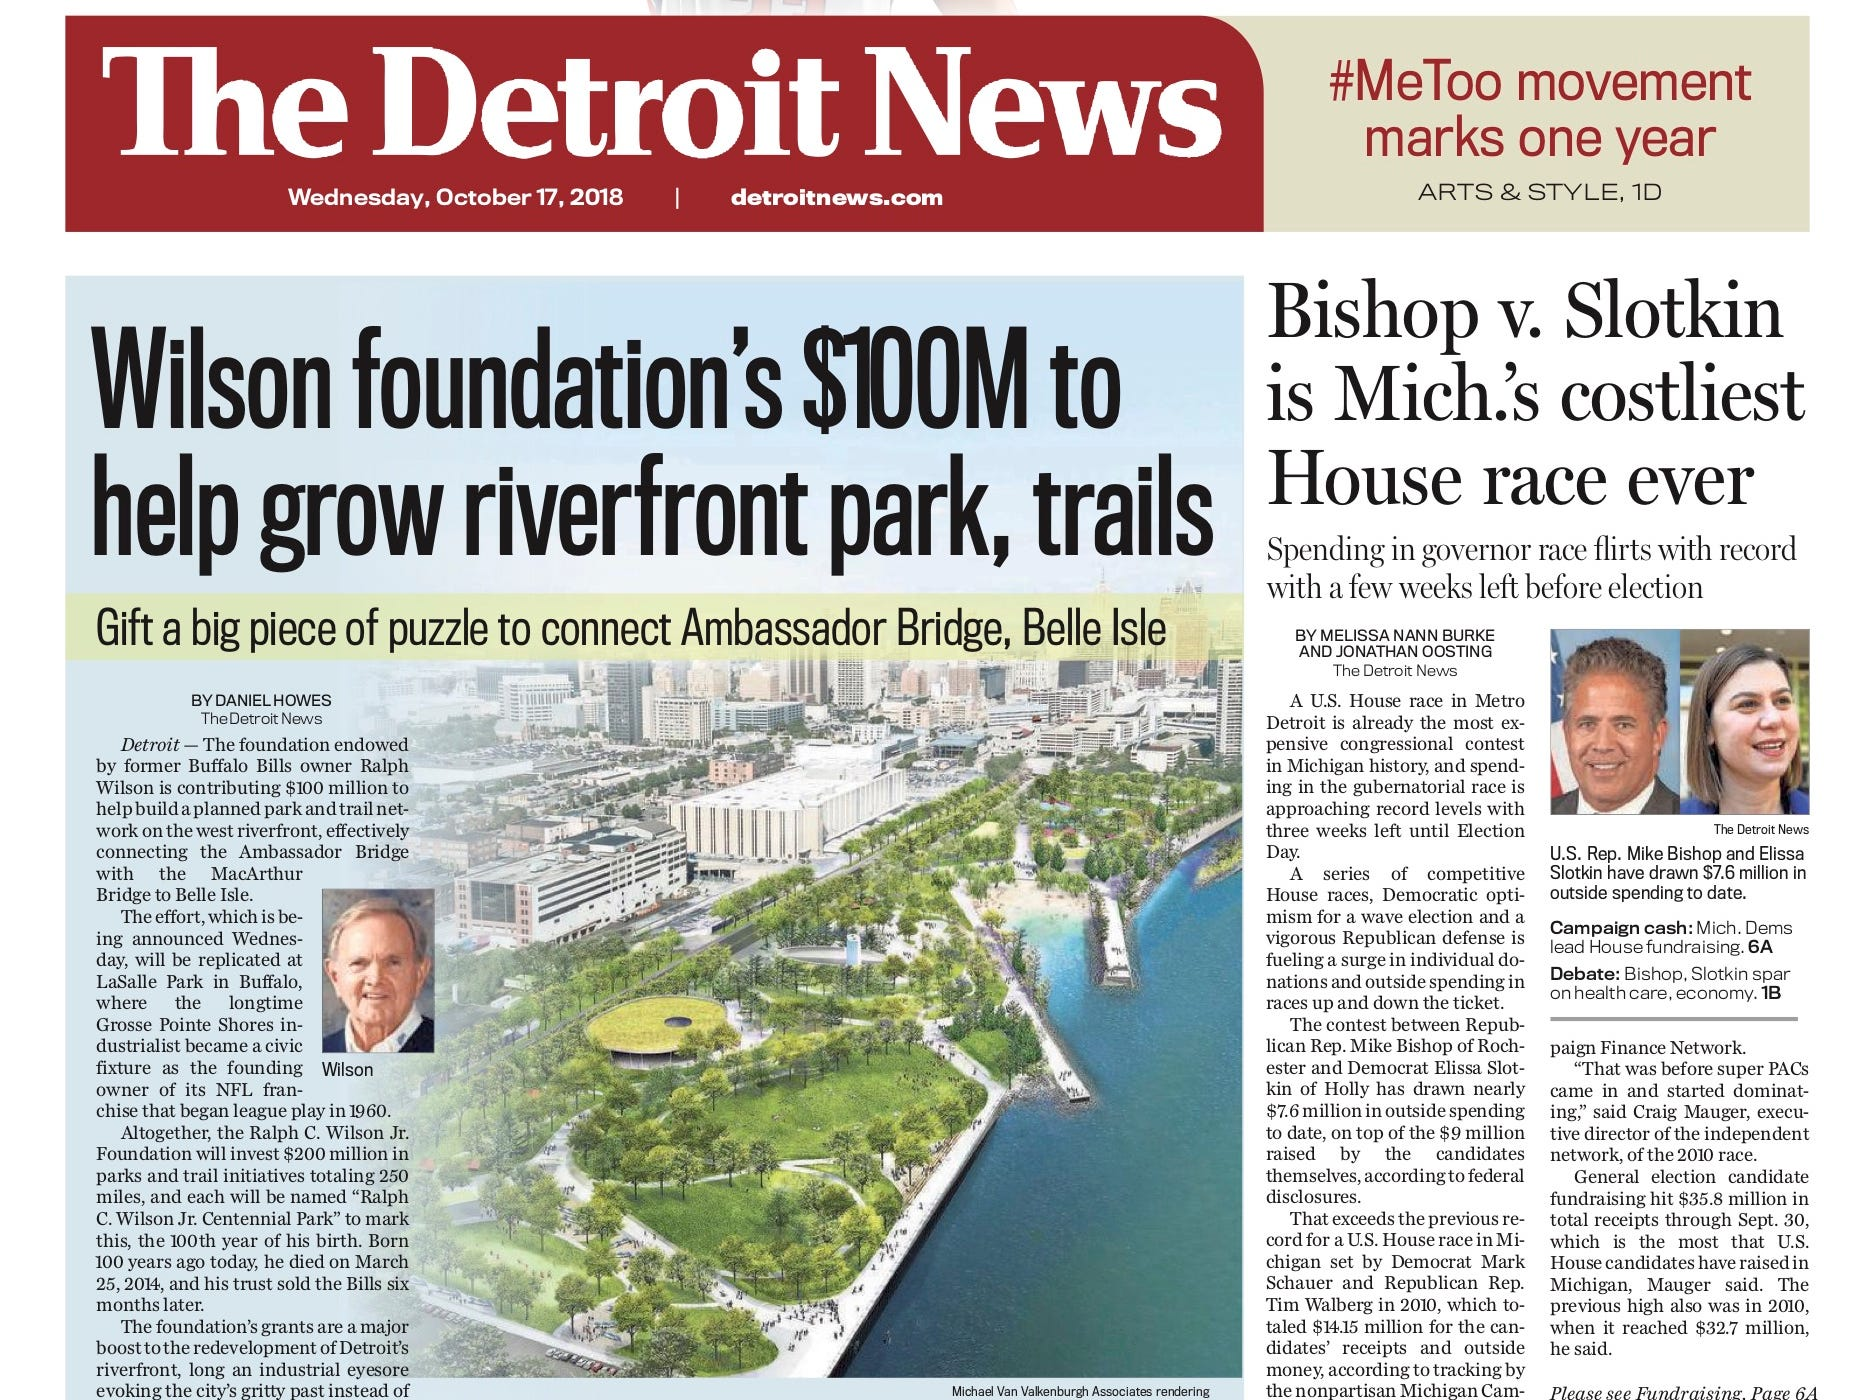 The front page of the Detroit News on October 17, 2018.